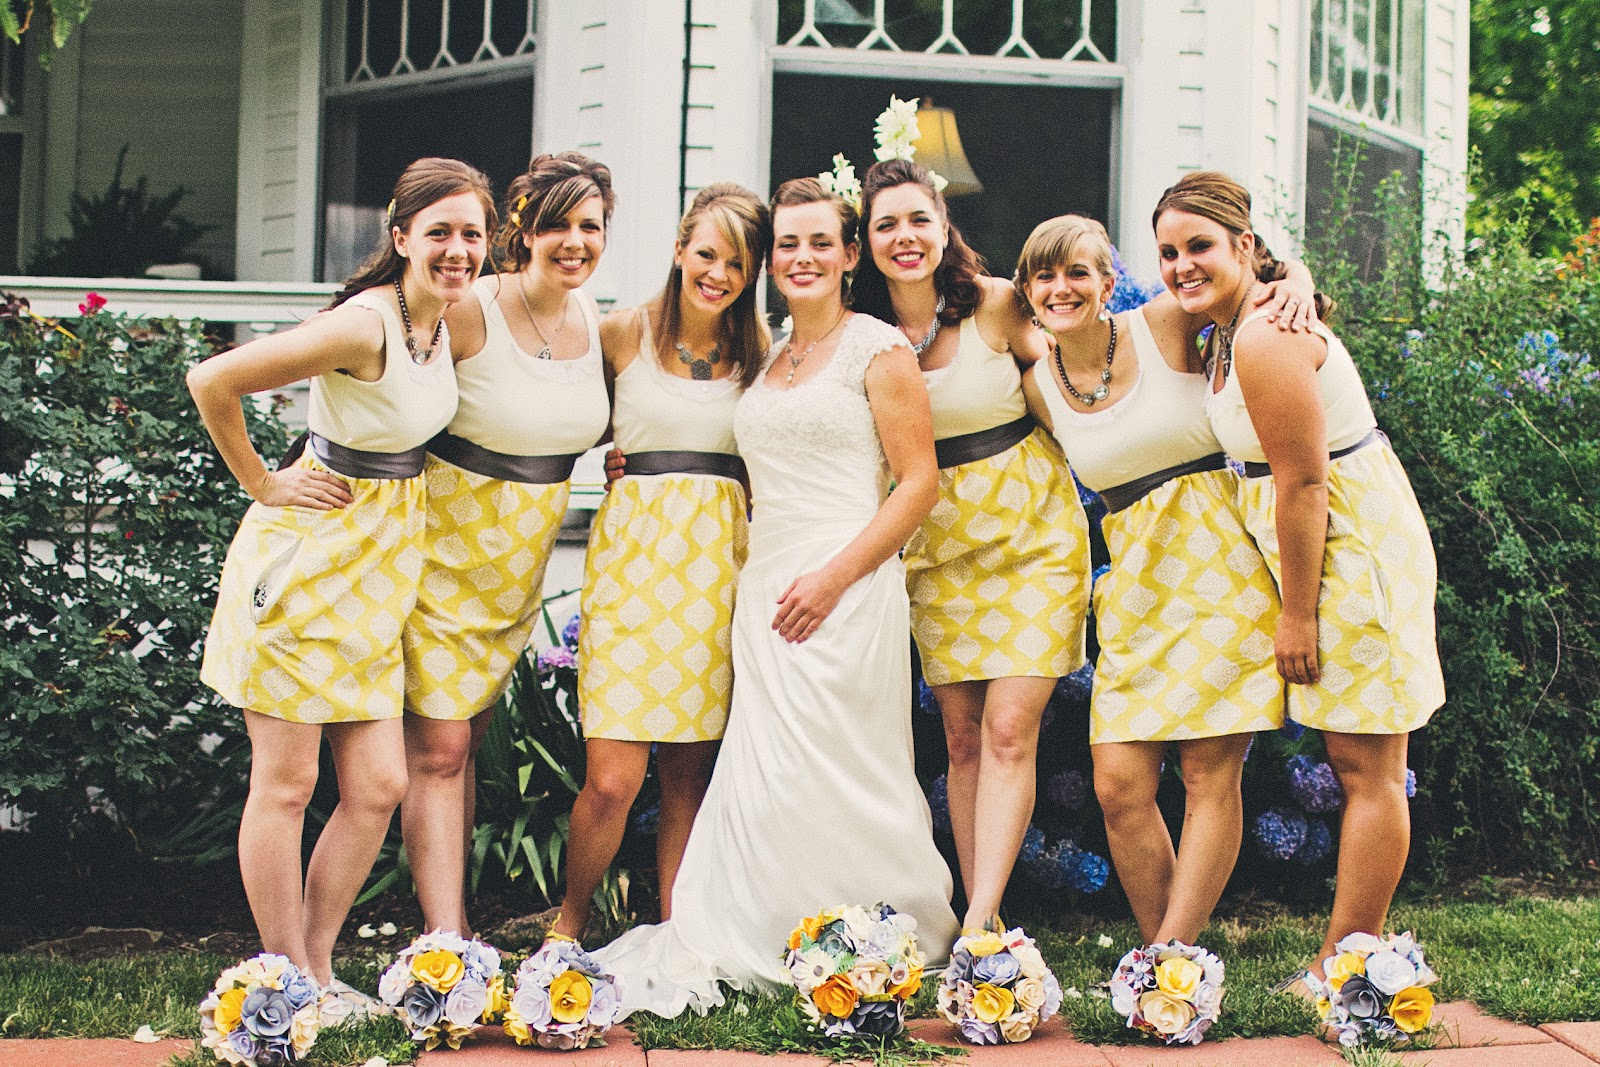 Mustard Yellow Wedding Dresses | Dress images